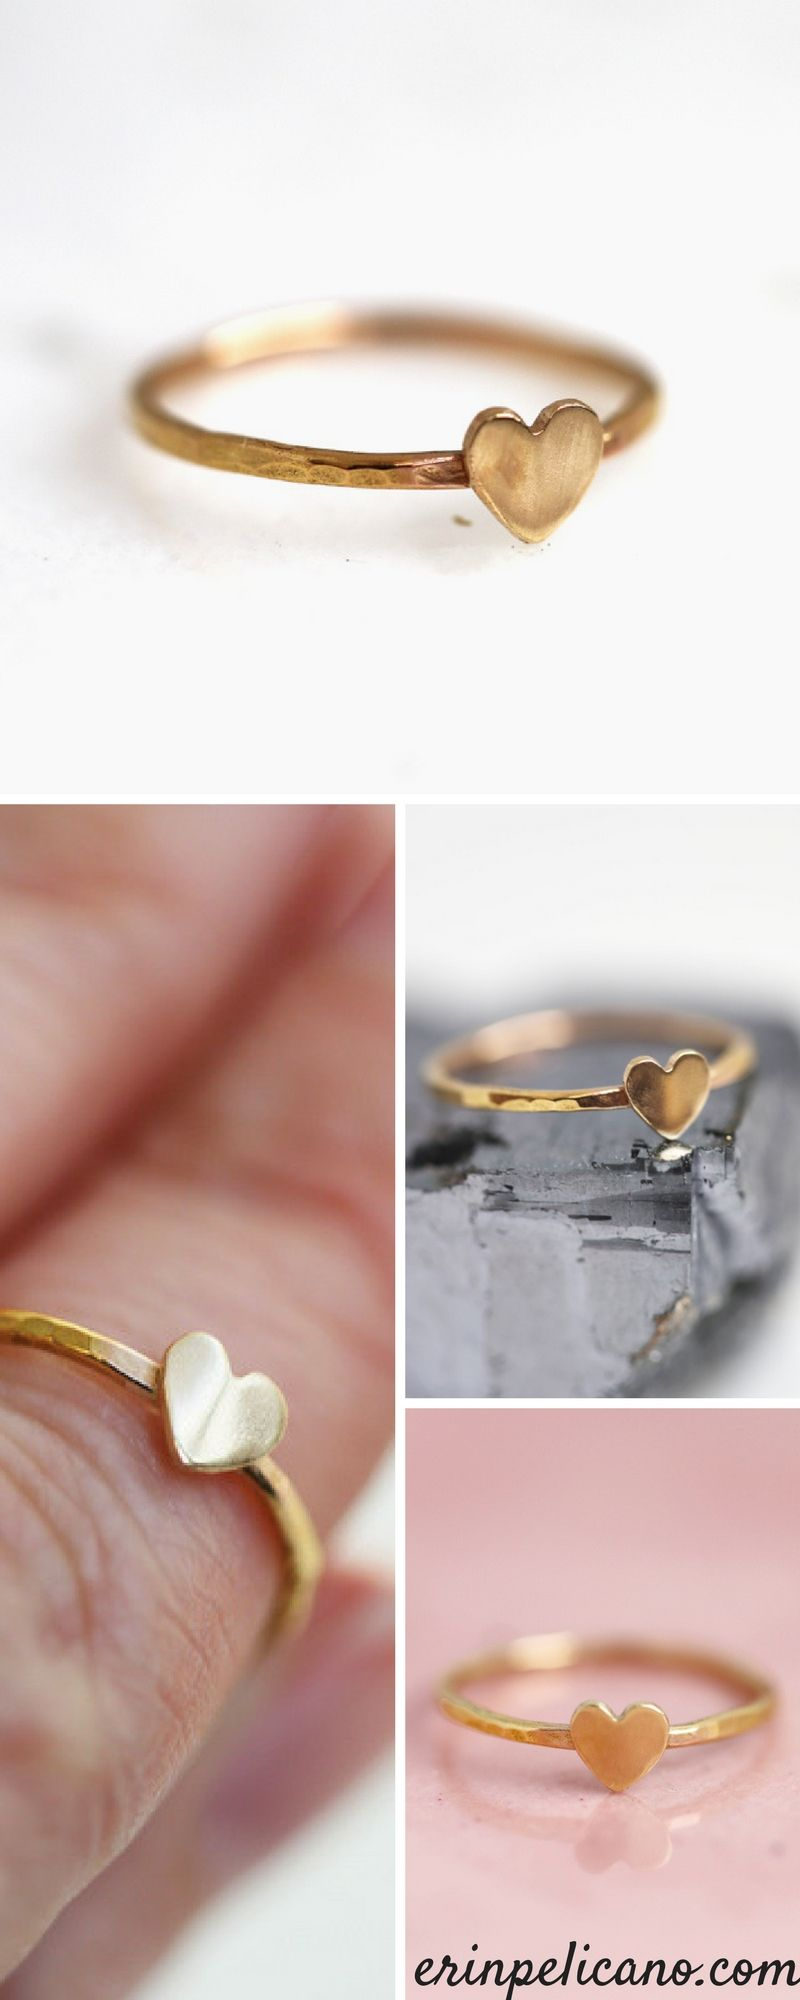 66478bf9e Gold heart rings, heart stacking ring to celebrate love! Anniversary Gift  ideas for wife, Mothers Day gifts for wife, and daughter - in fine 14k gold.